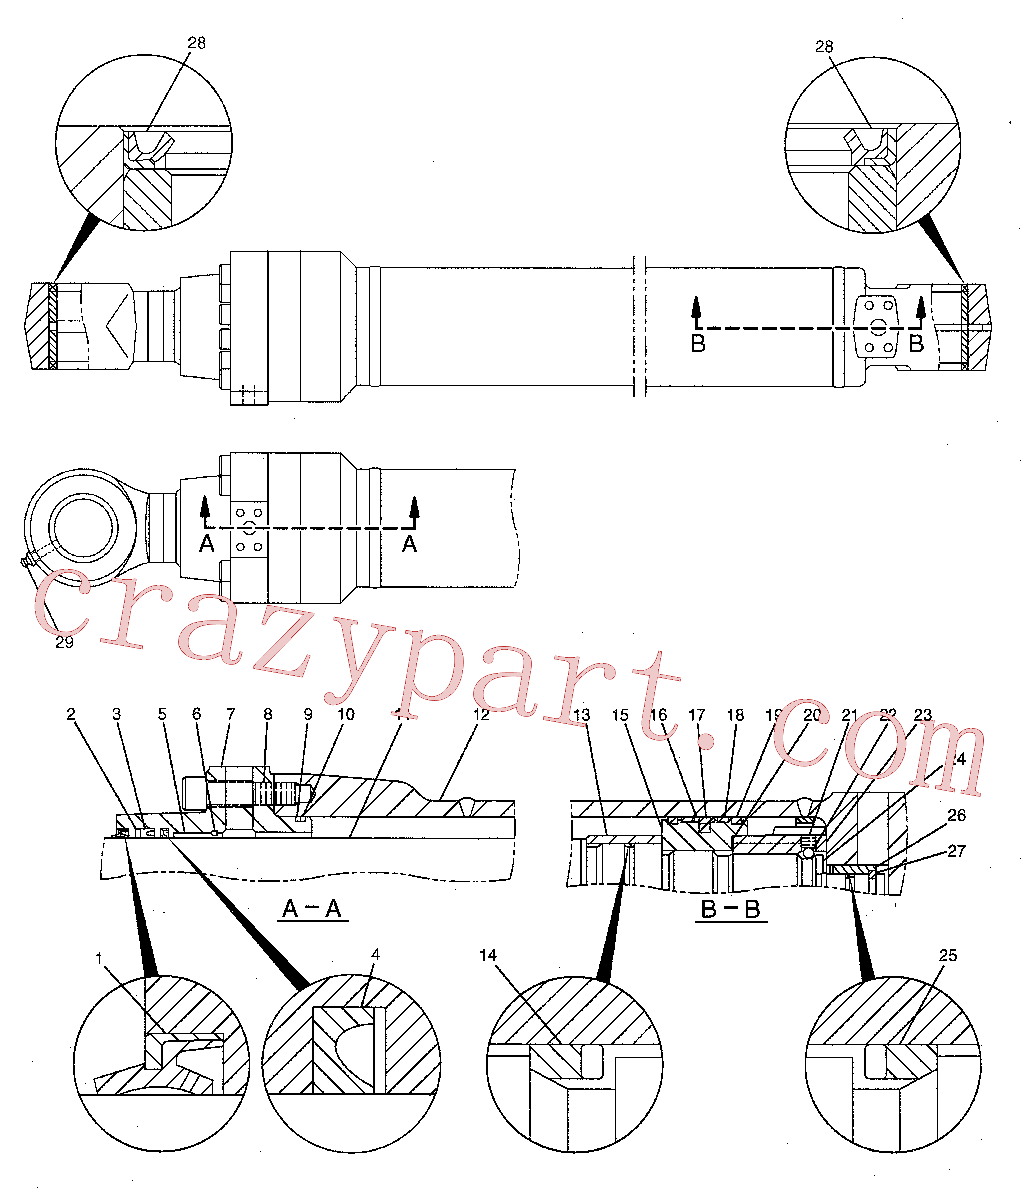 CAT 493-5523 for 321C Excavator(EXC) hydraulic system 204-3615 Assembly